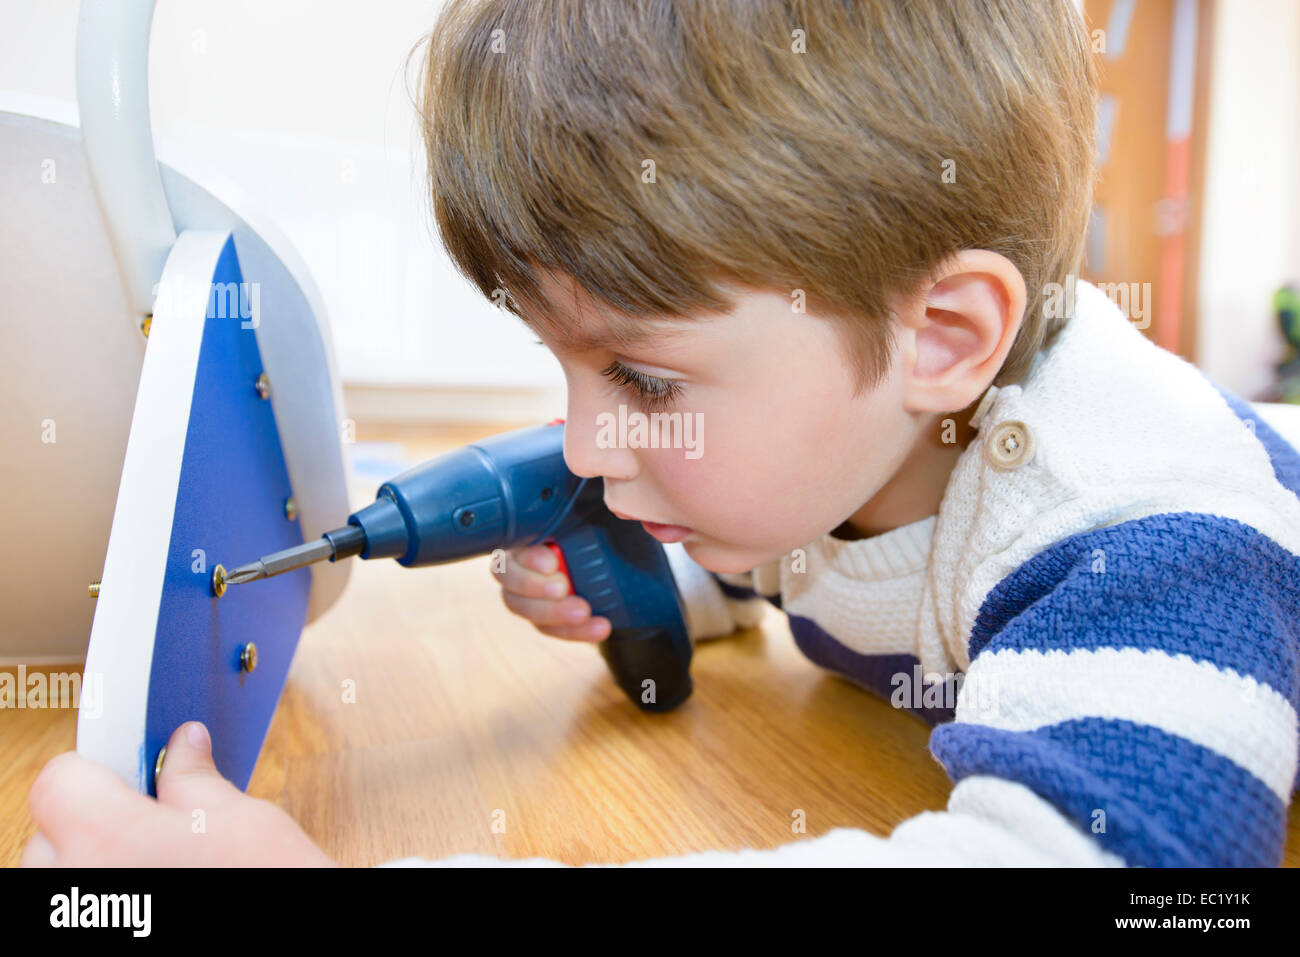 Little Boy using diy tool at home - Stock Image